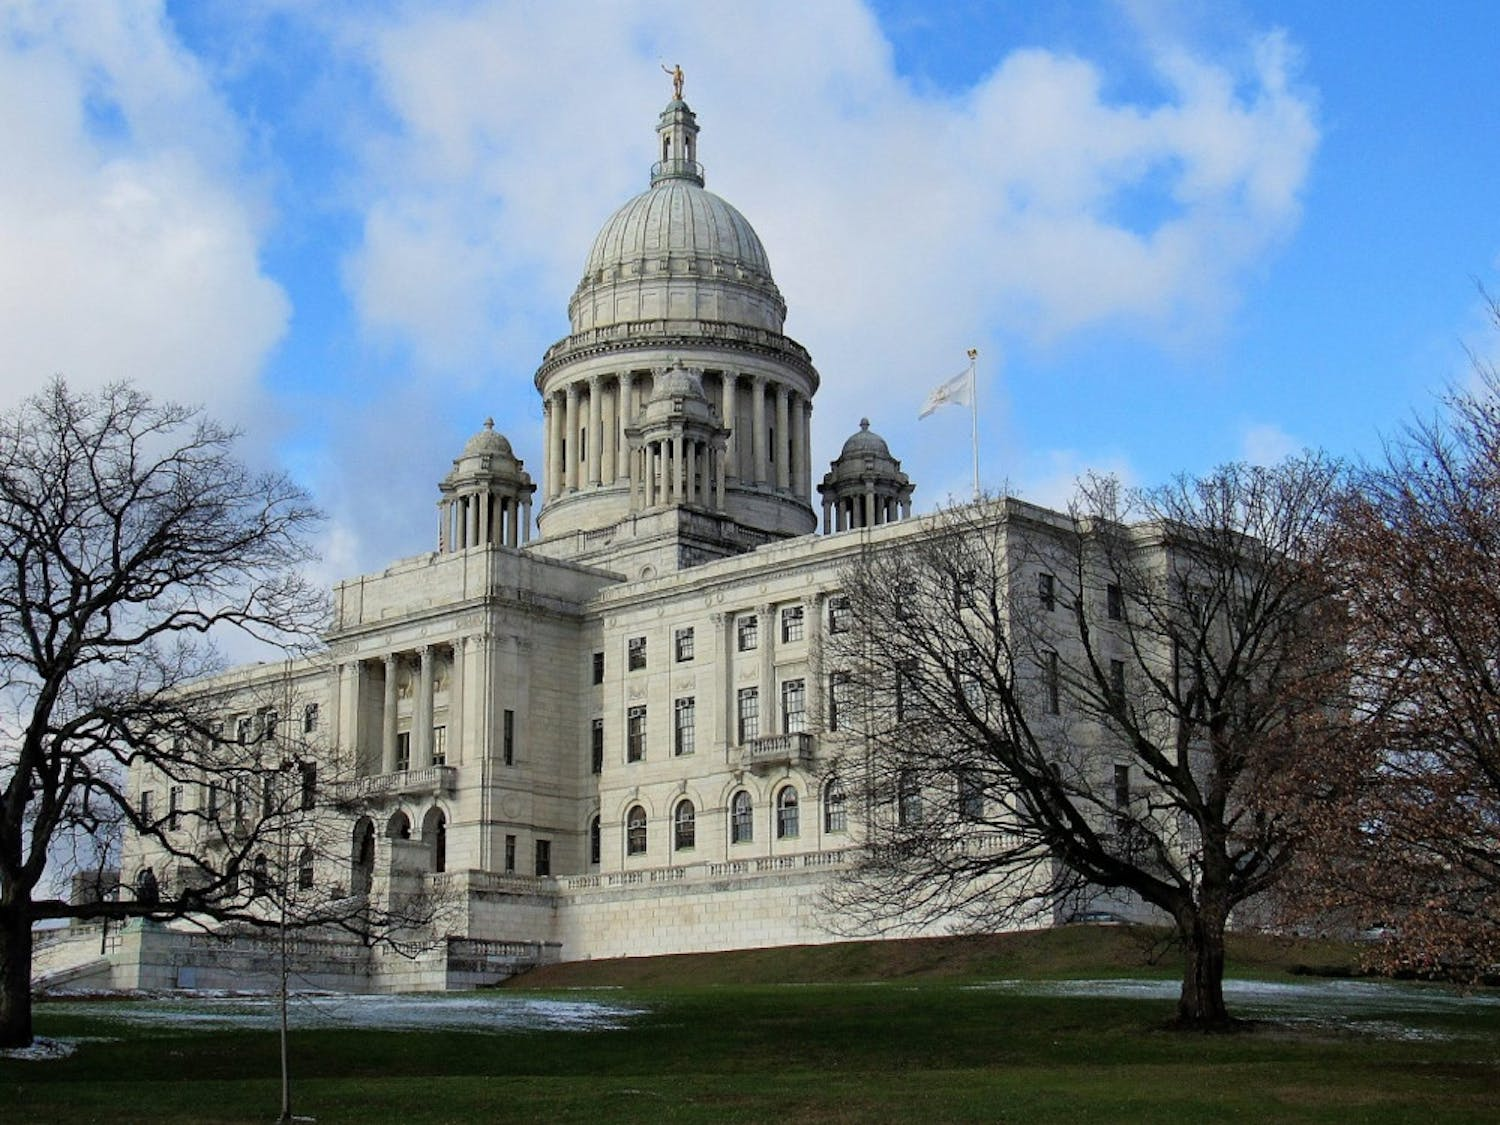 RI-State-House-Courtesy-of-Wikimedia-Commons-1536x1179-1